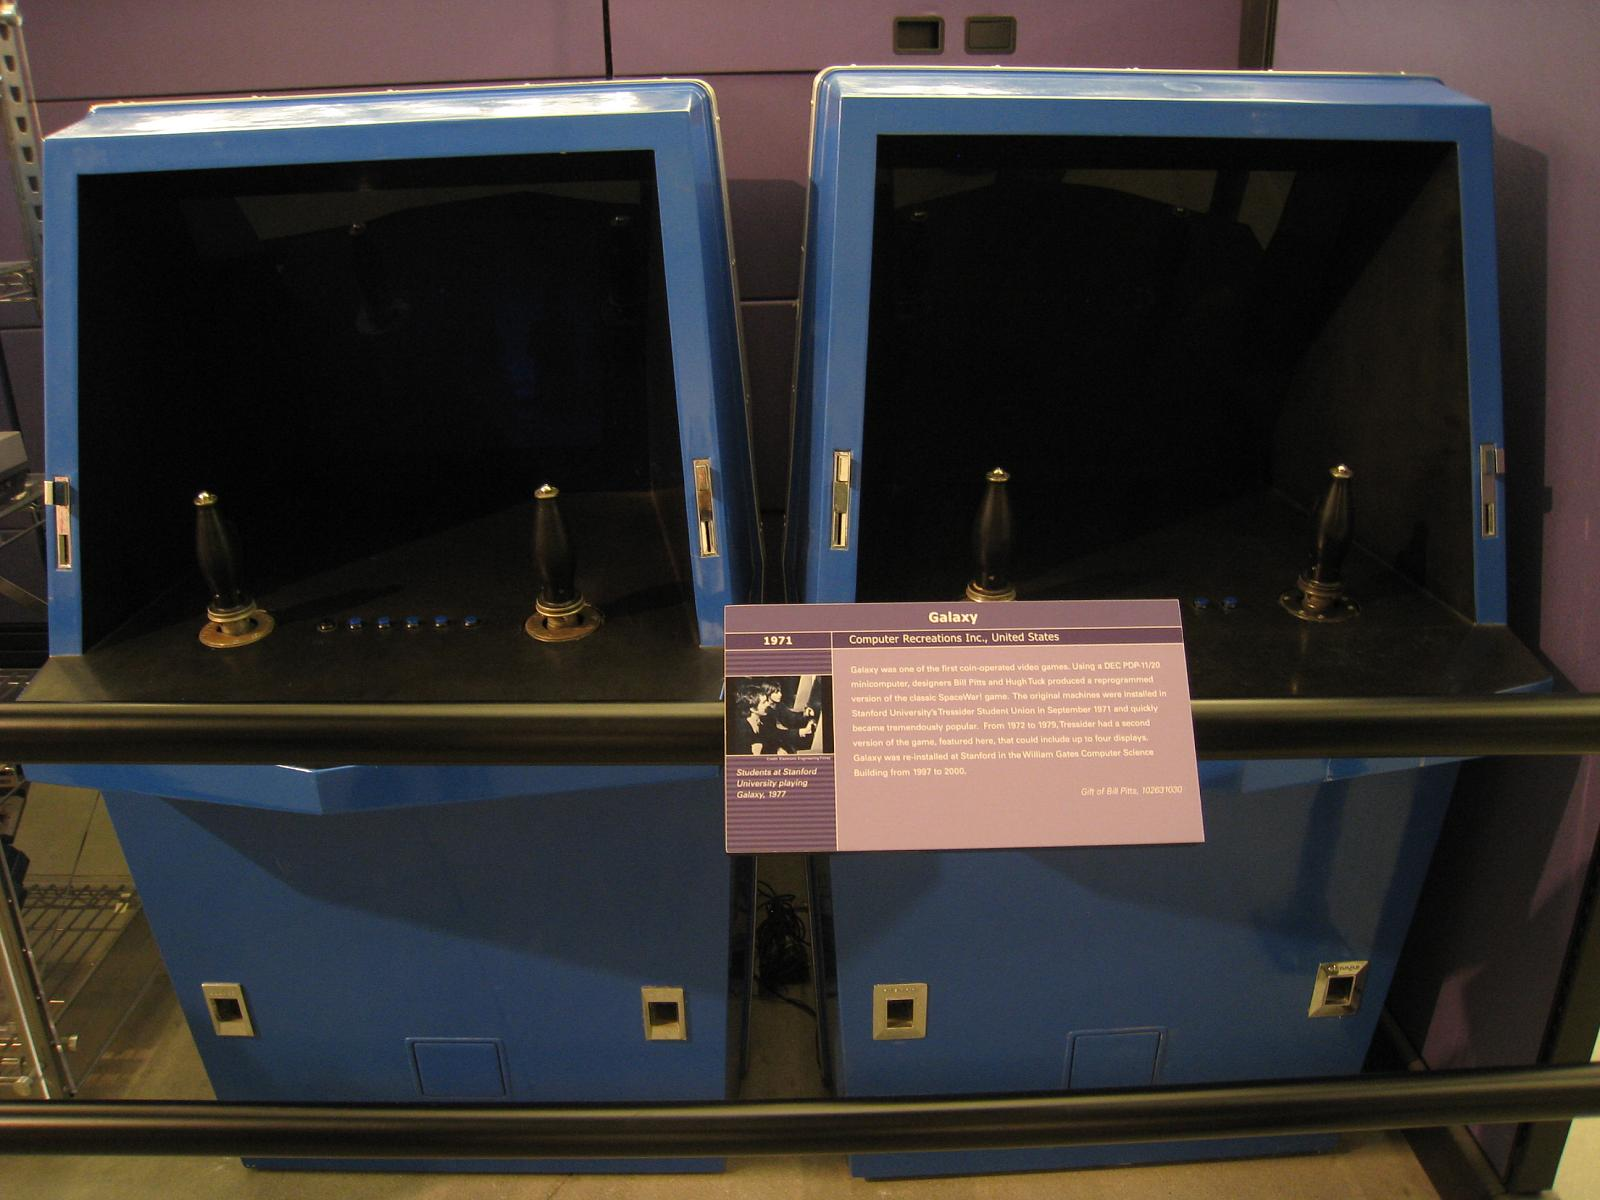 Galaxy Game 1971 first arcade game